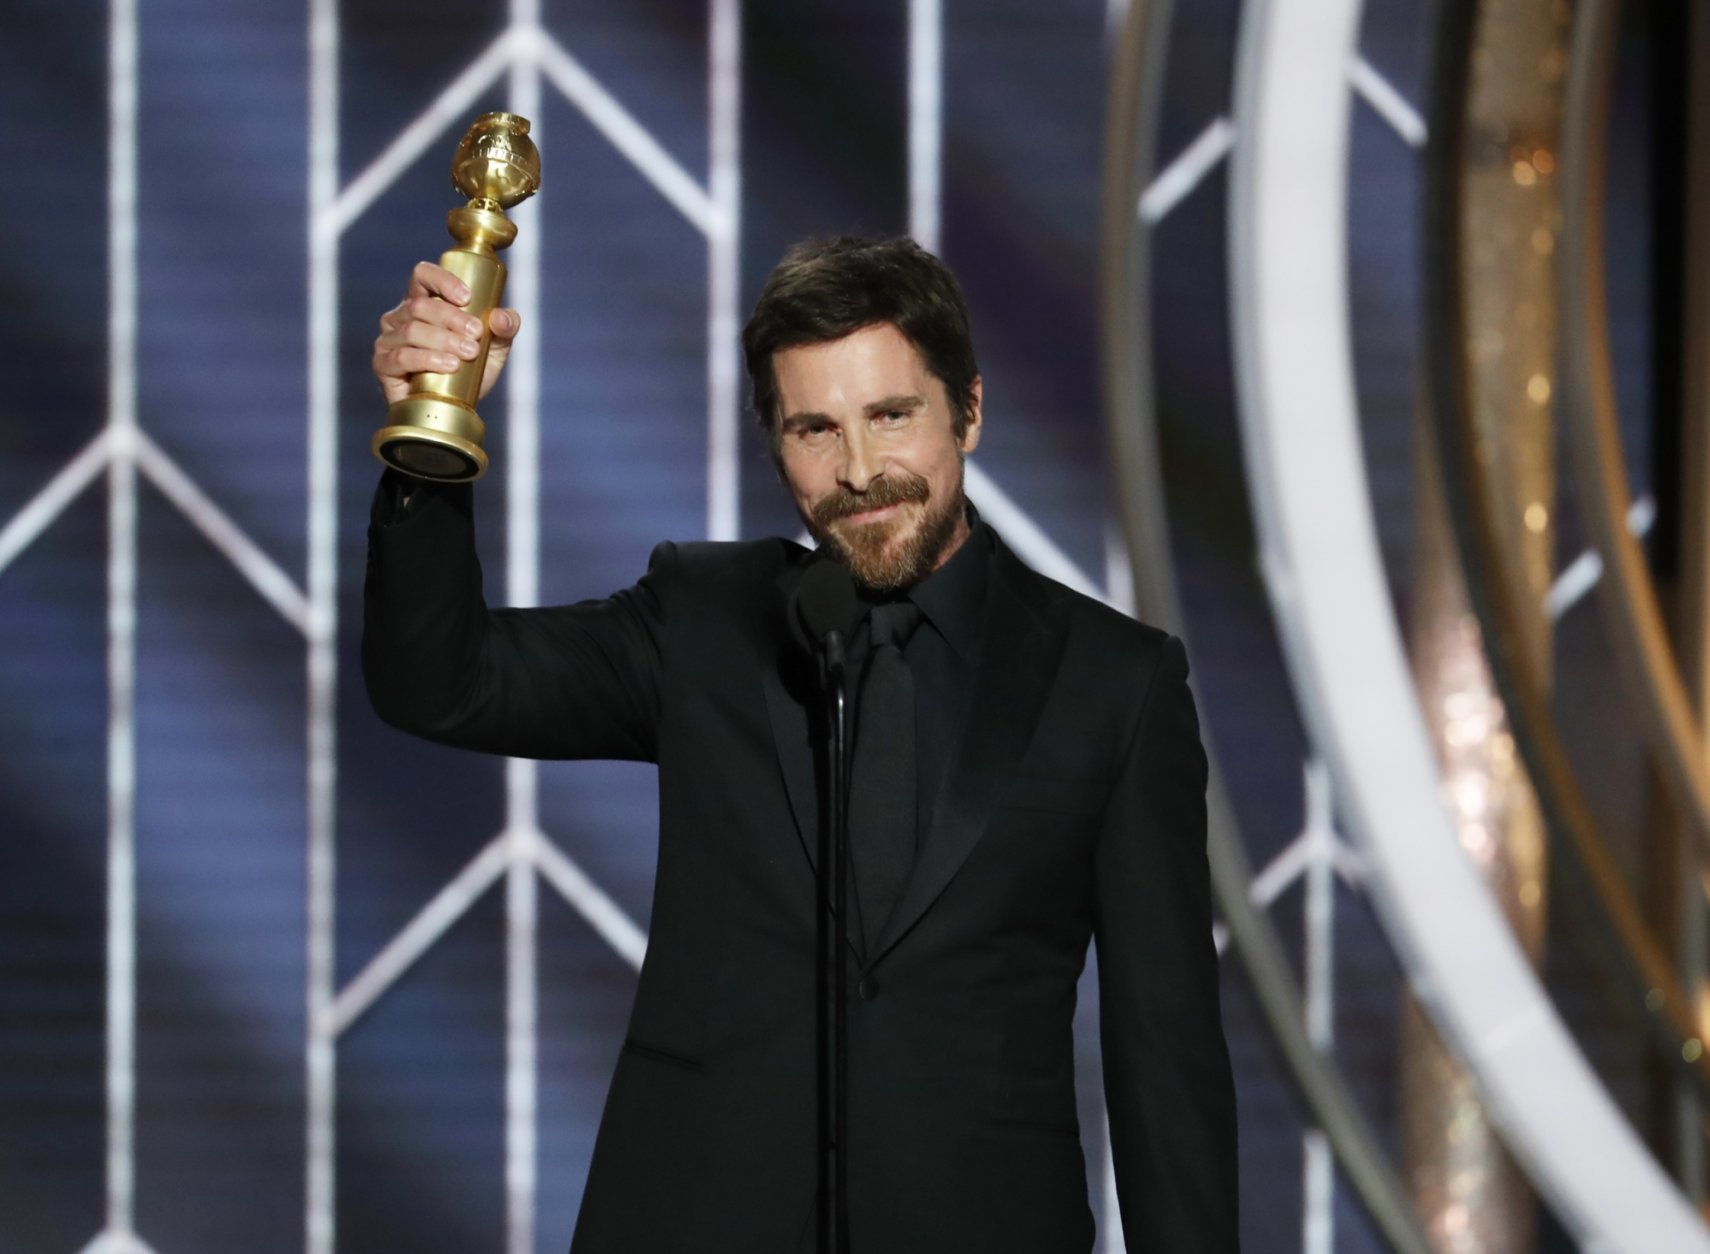 """This image released by NBC shows Christian Bale accepting the award for best actor in motion picture musical or comedy for his role in """"Vice"""" during the 76th Annual Golden Globe Awards at the Beverly Hilton Hotel on Sunday, Jan. 6, 2019, in Beverly Hills, Calif. (Paul Drinkwater/NBC via AP)"""